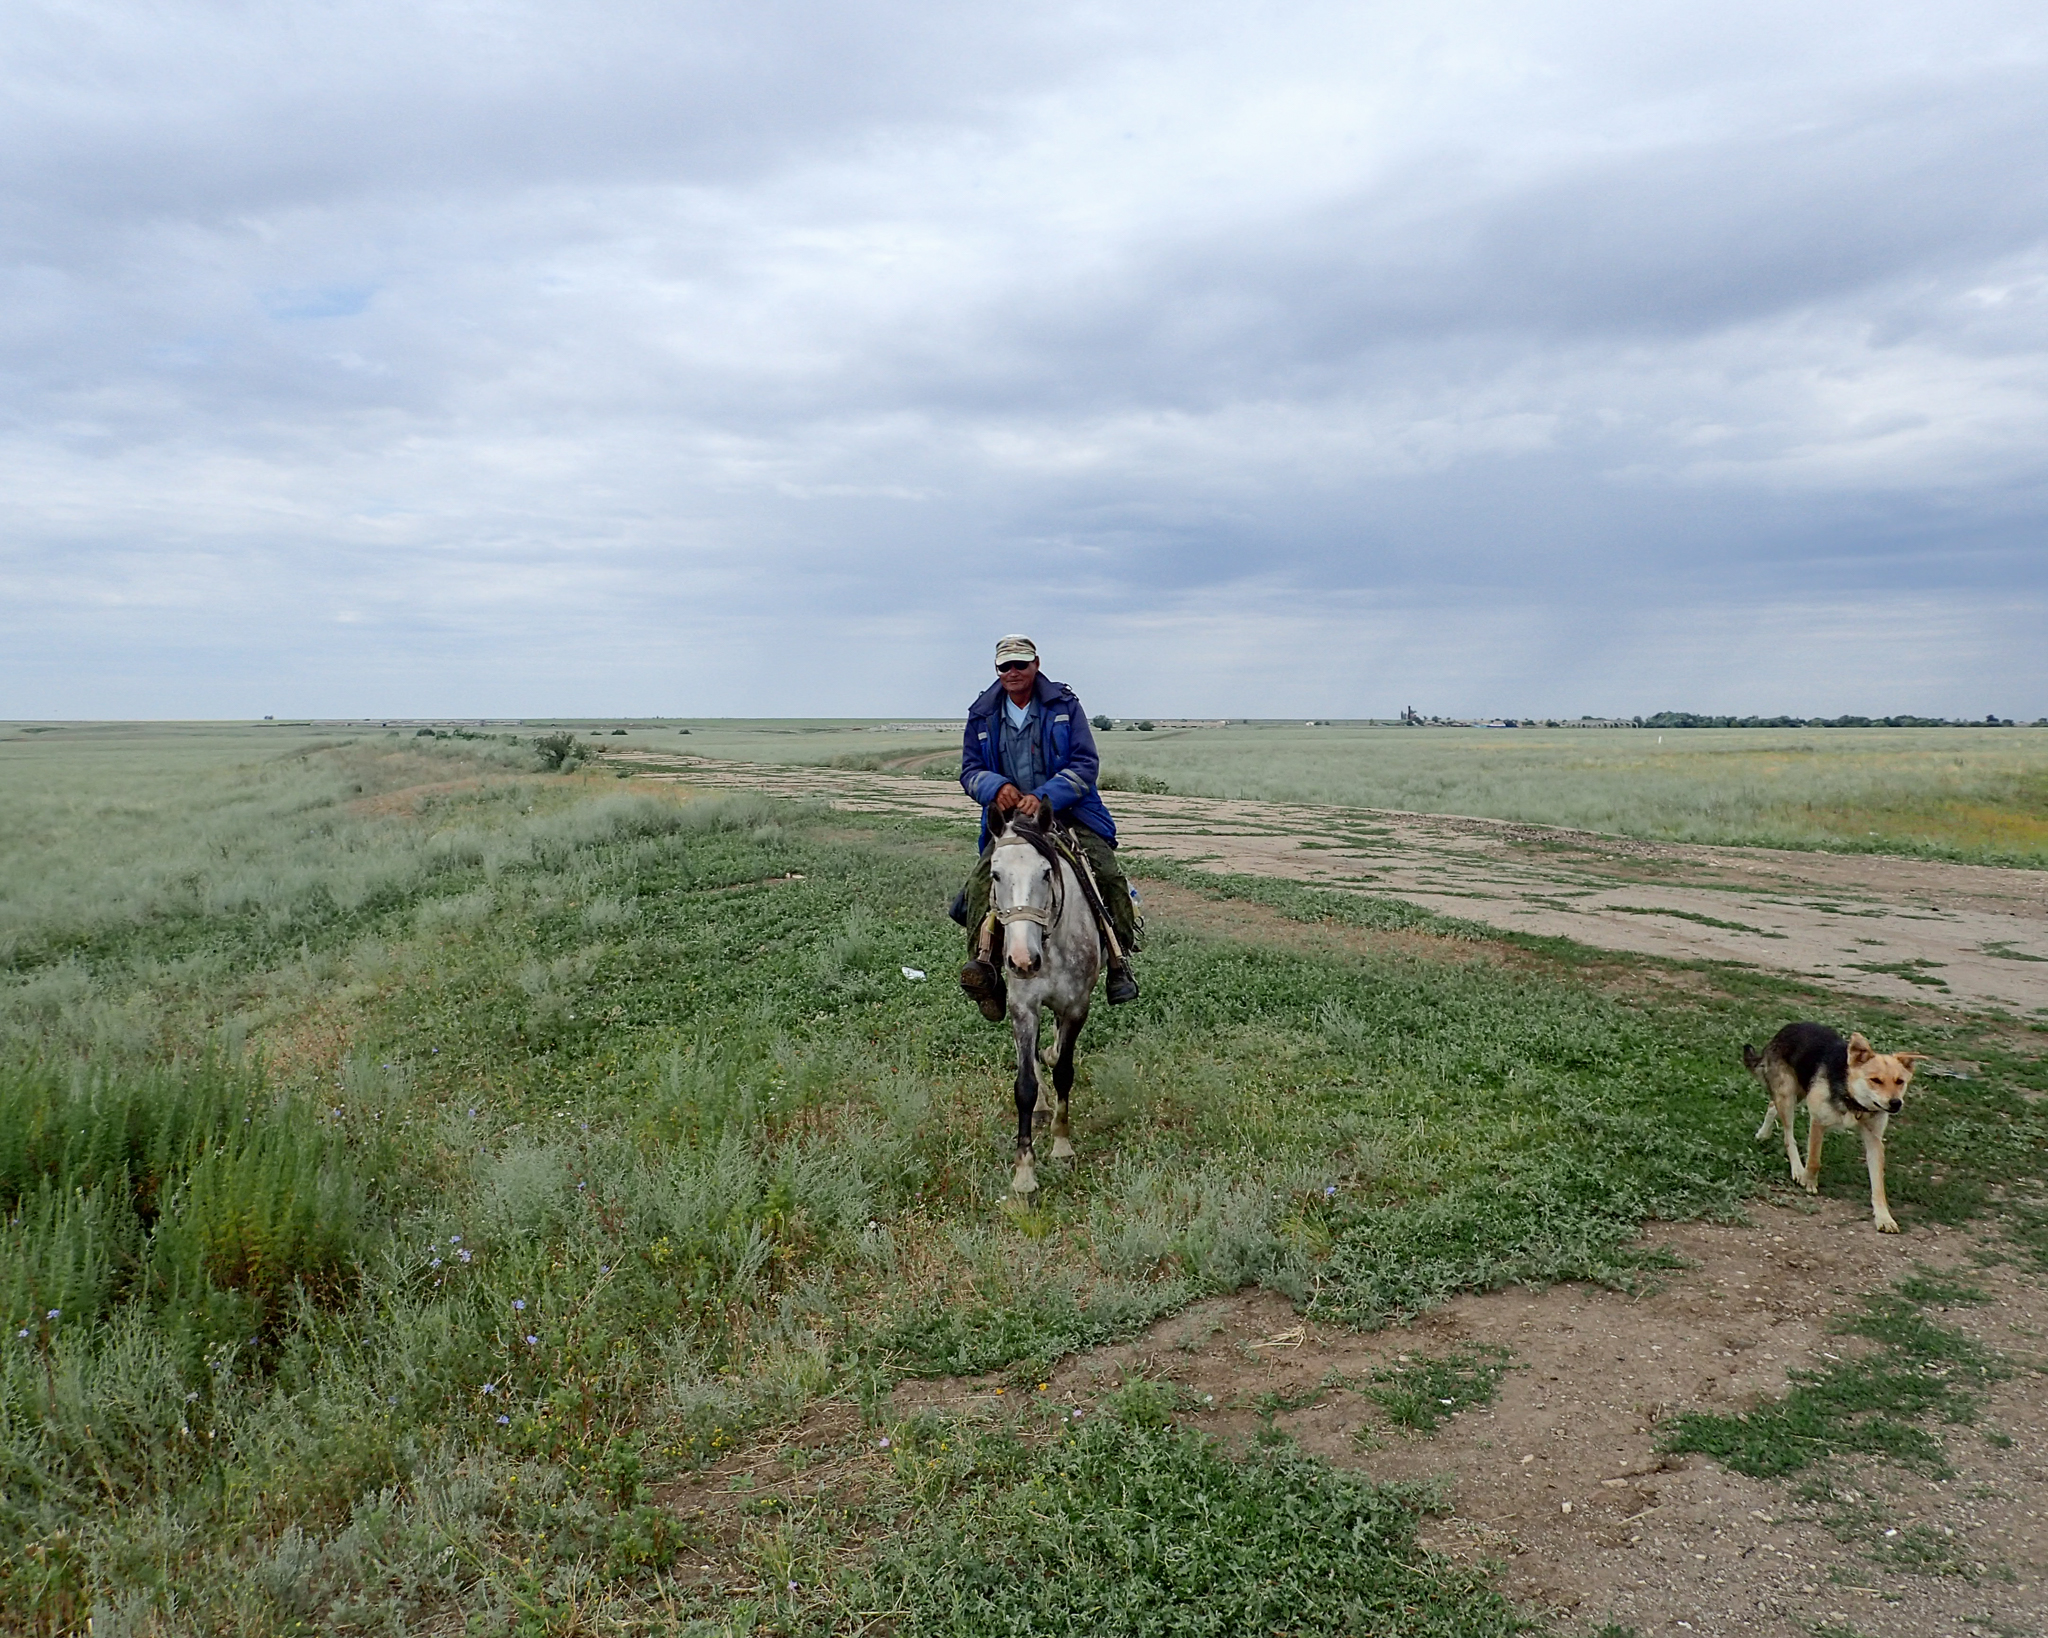 A friendly herdsman and dog